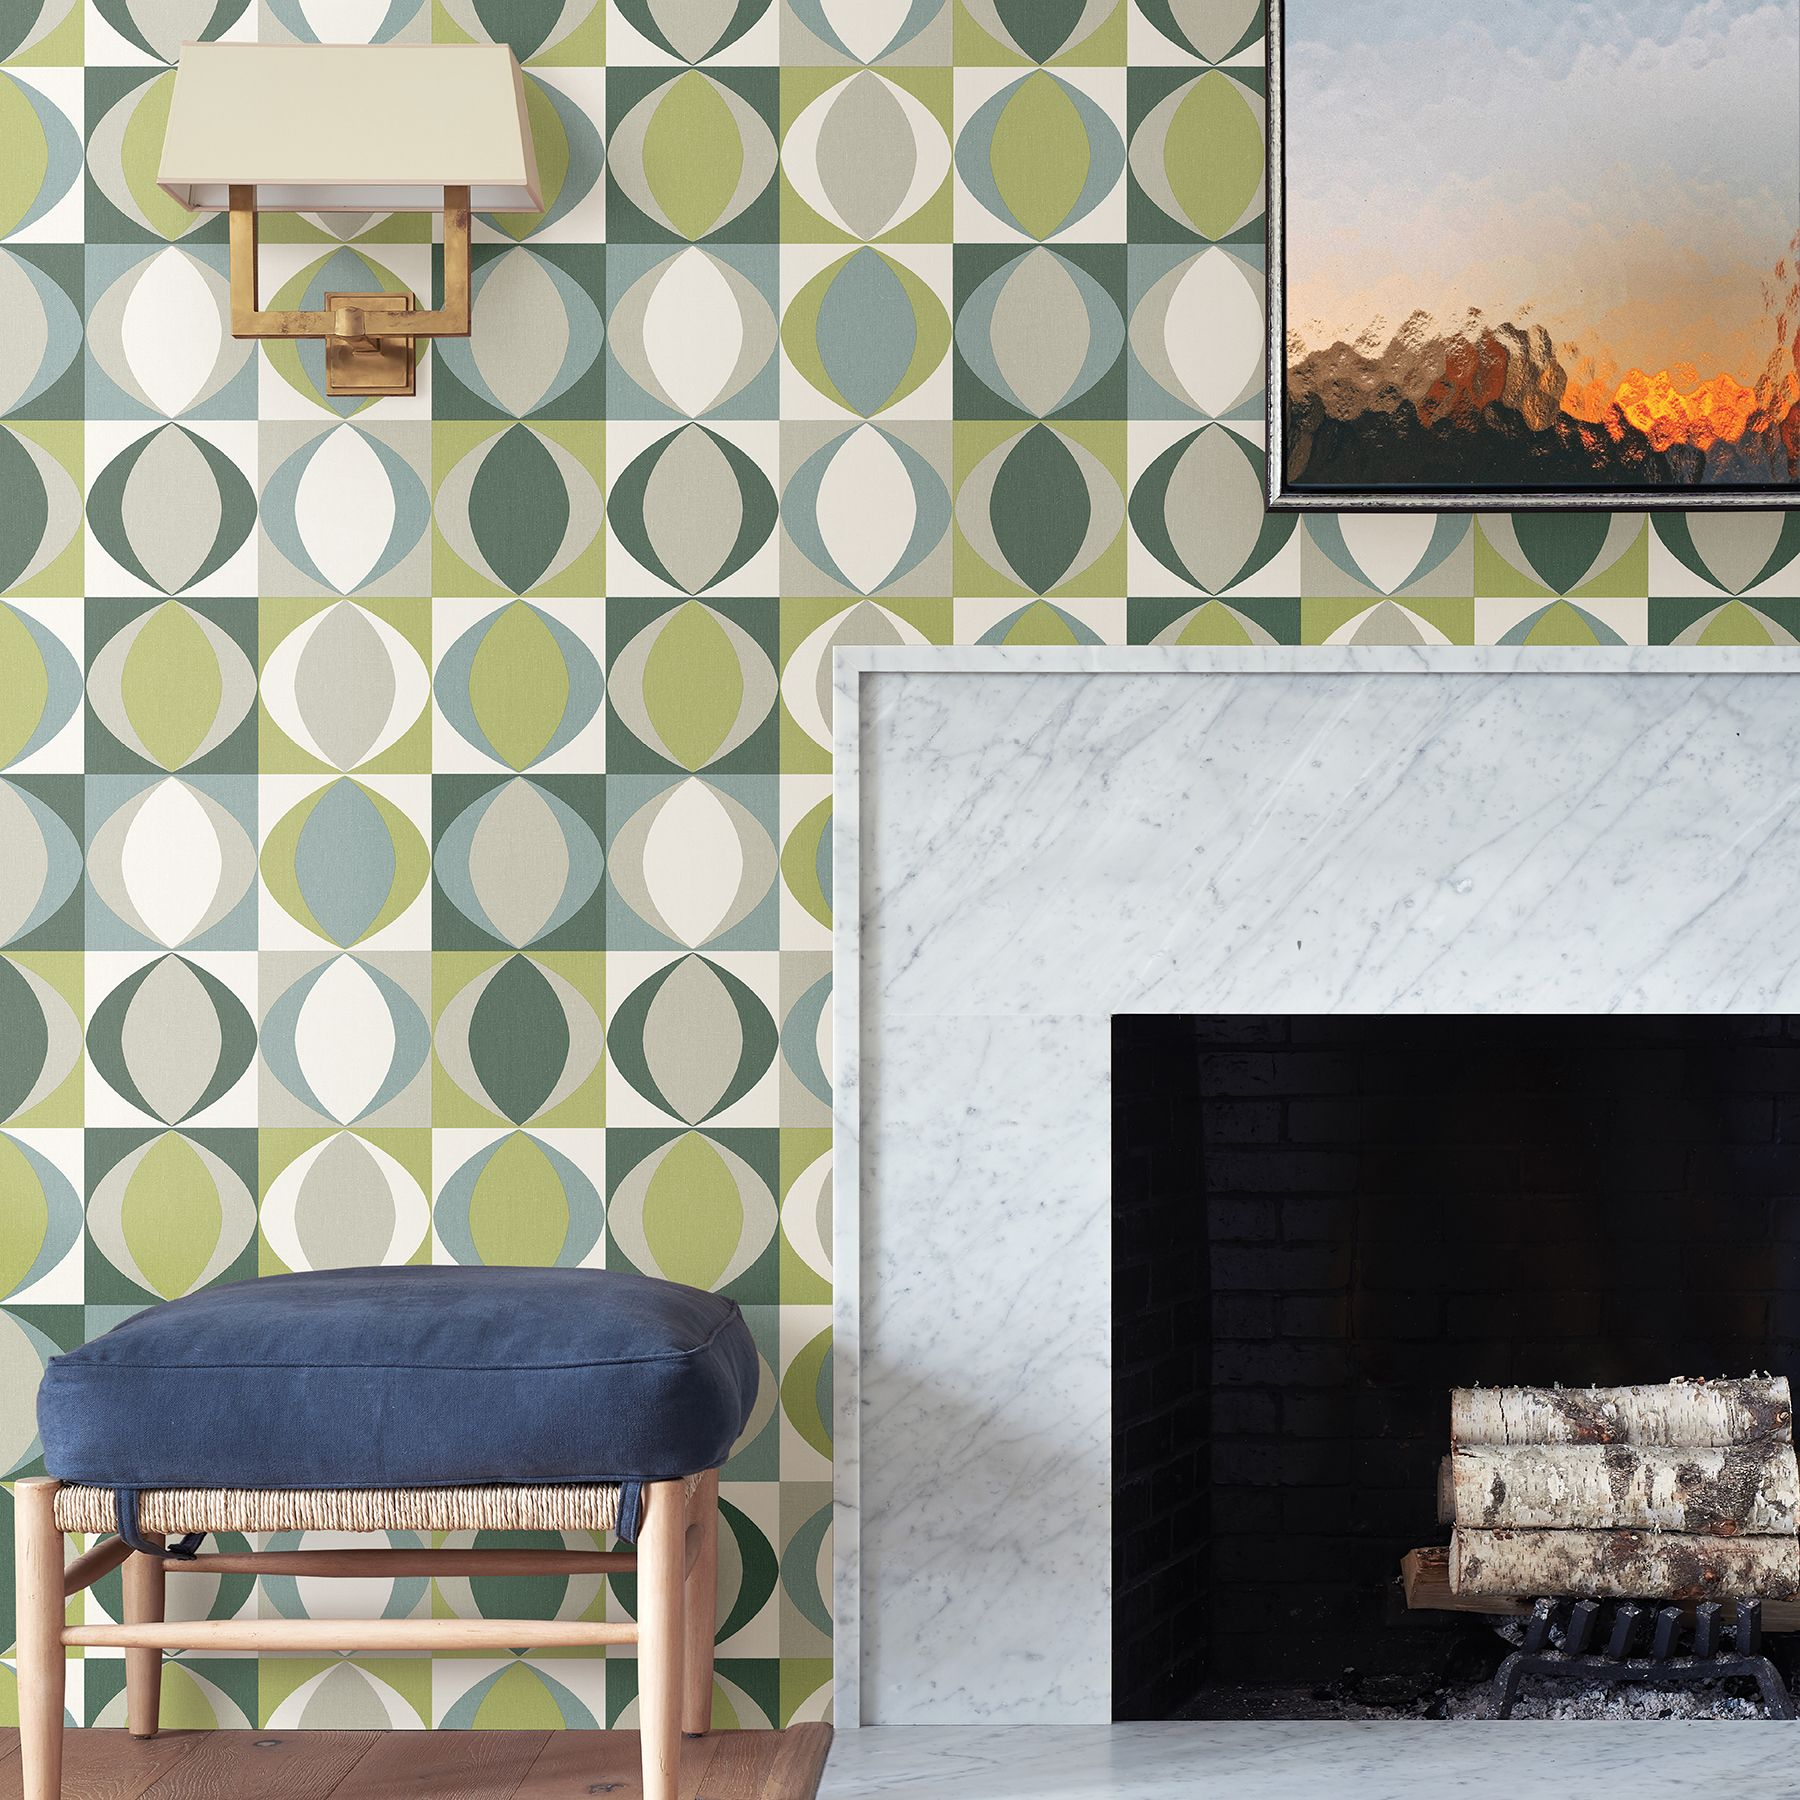 Modern and fresh, bright and contemporary, this collection